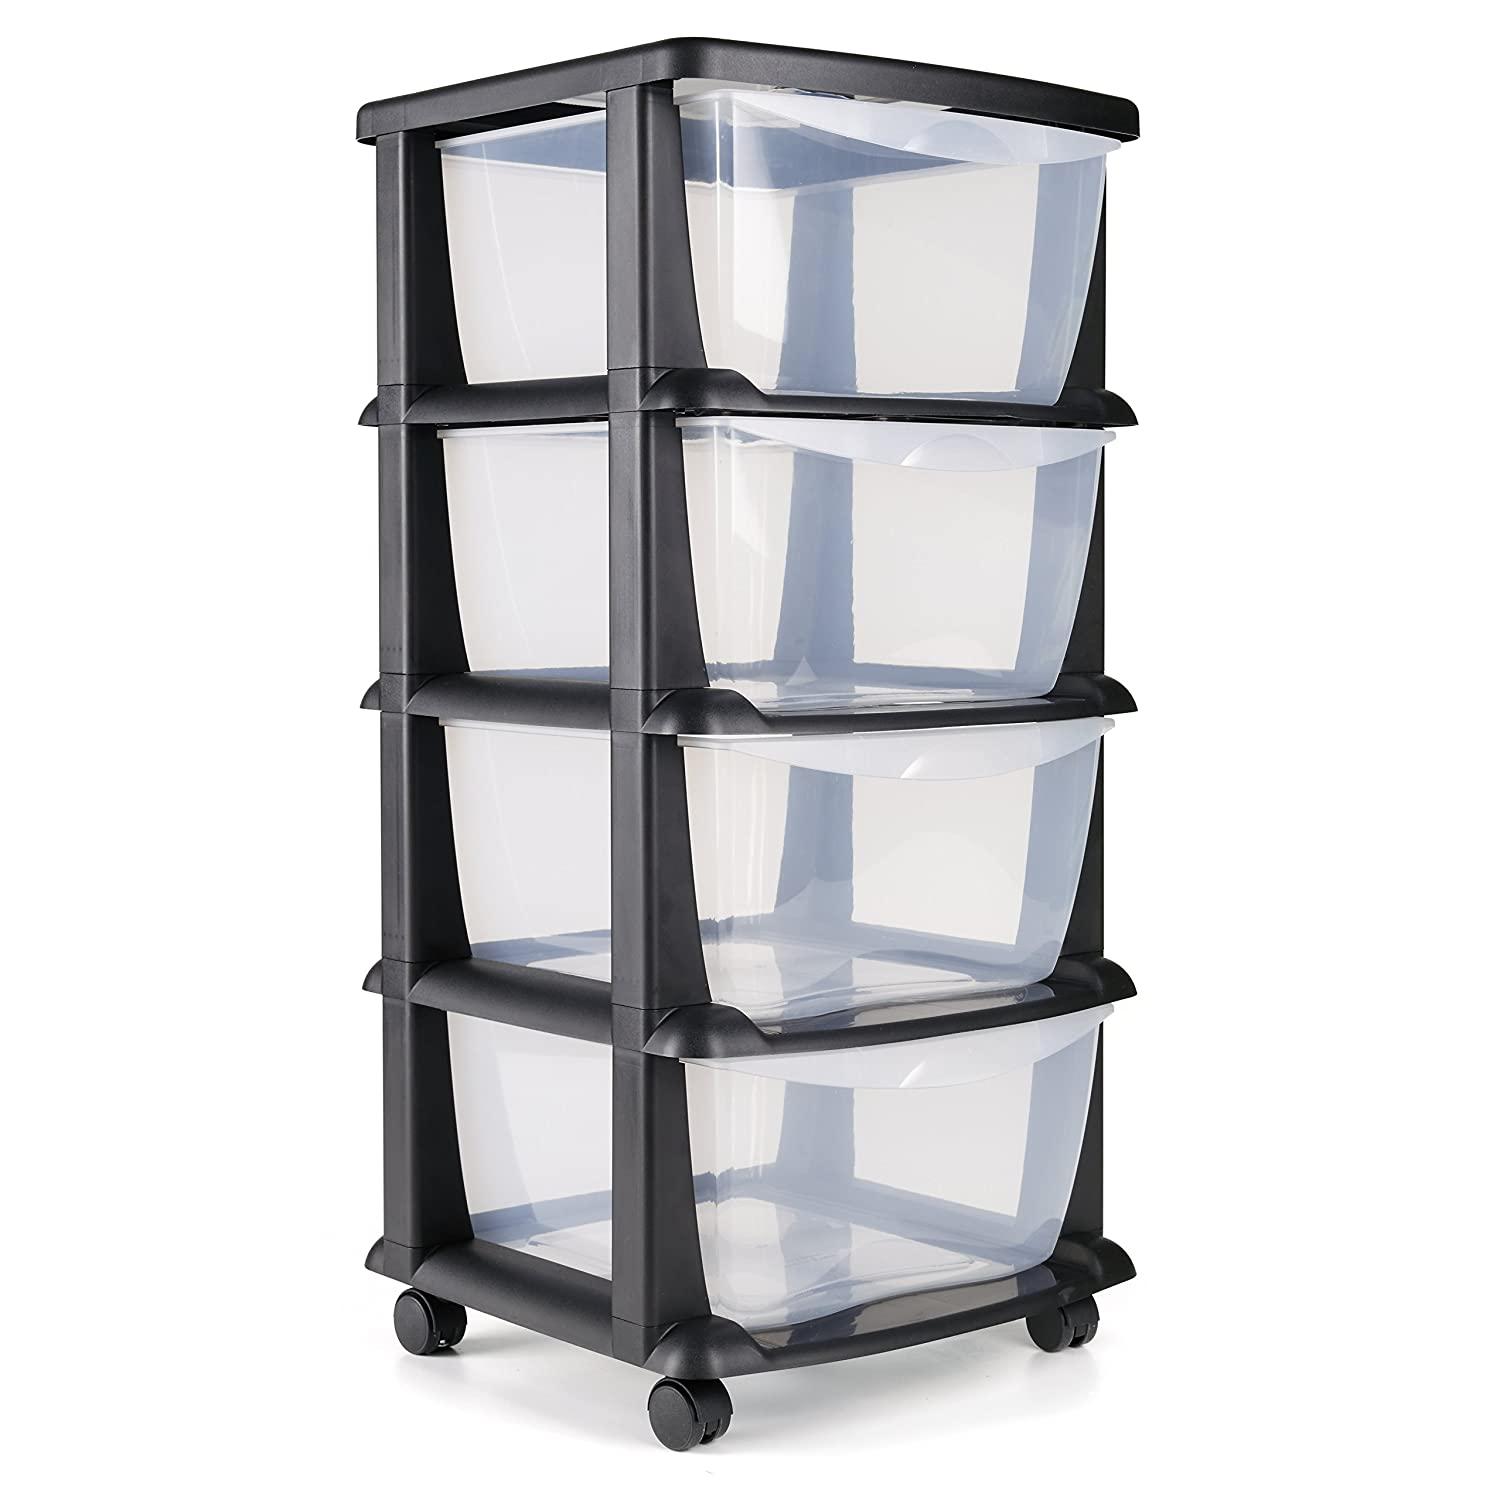 Made in Europe Maxi Nature Kitchenware Plastic Storage Drawers on wheels cabinet containers large unit cabinet 4 drawers